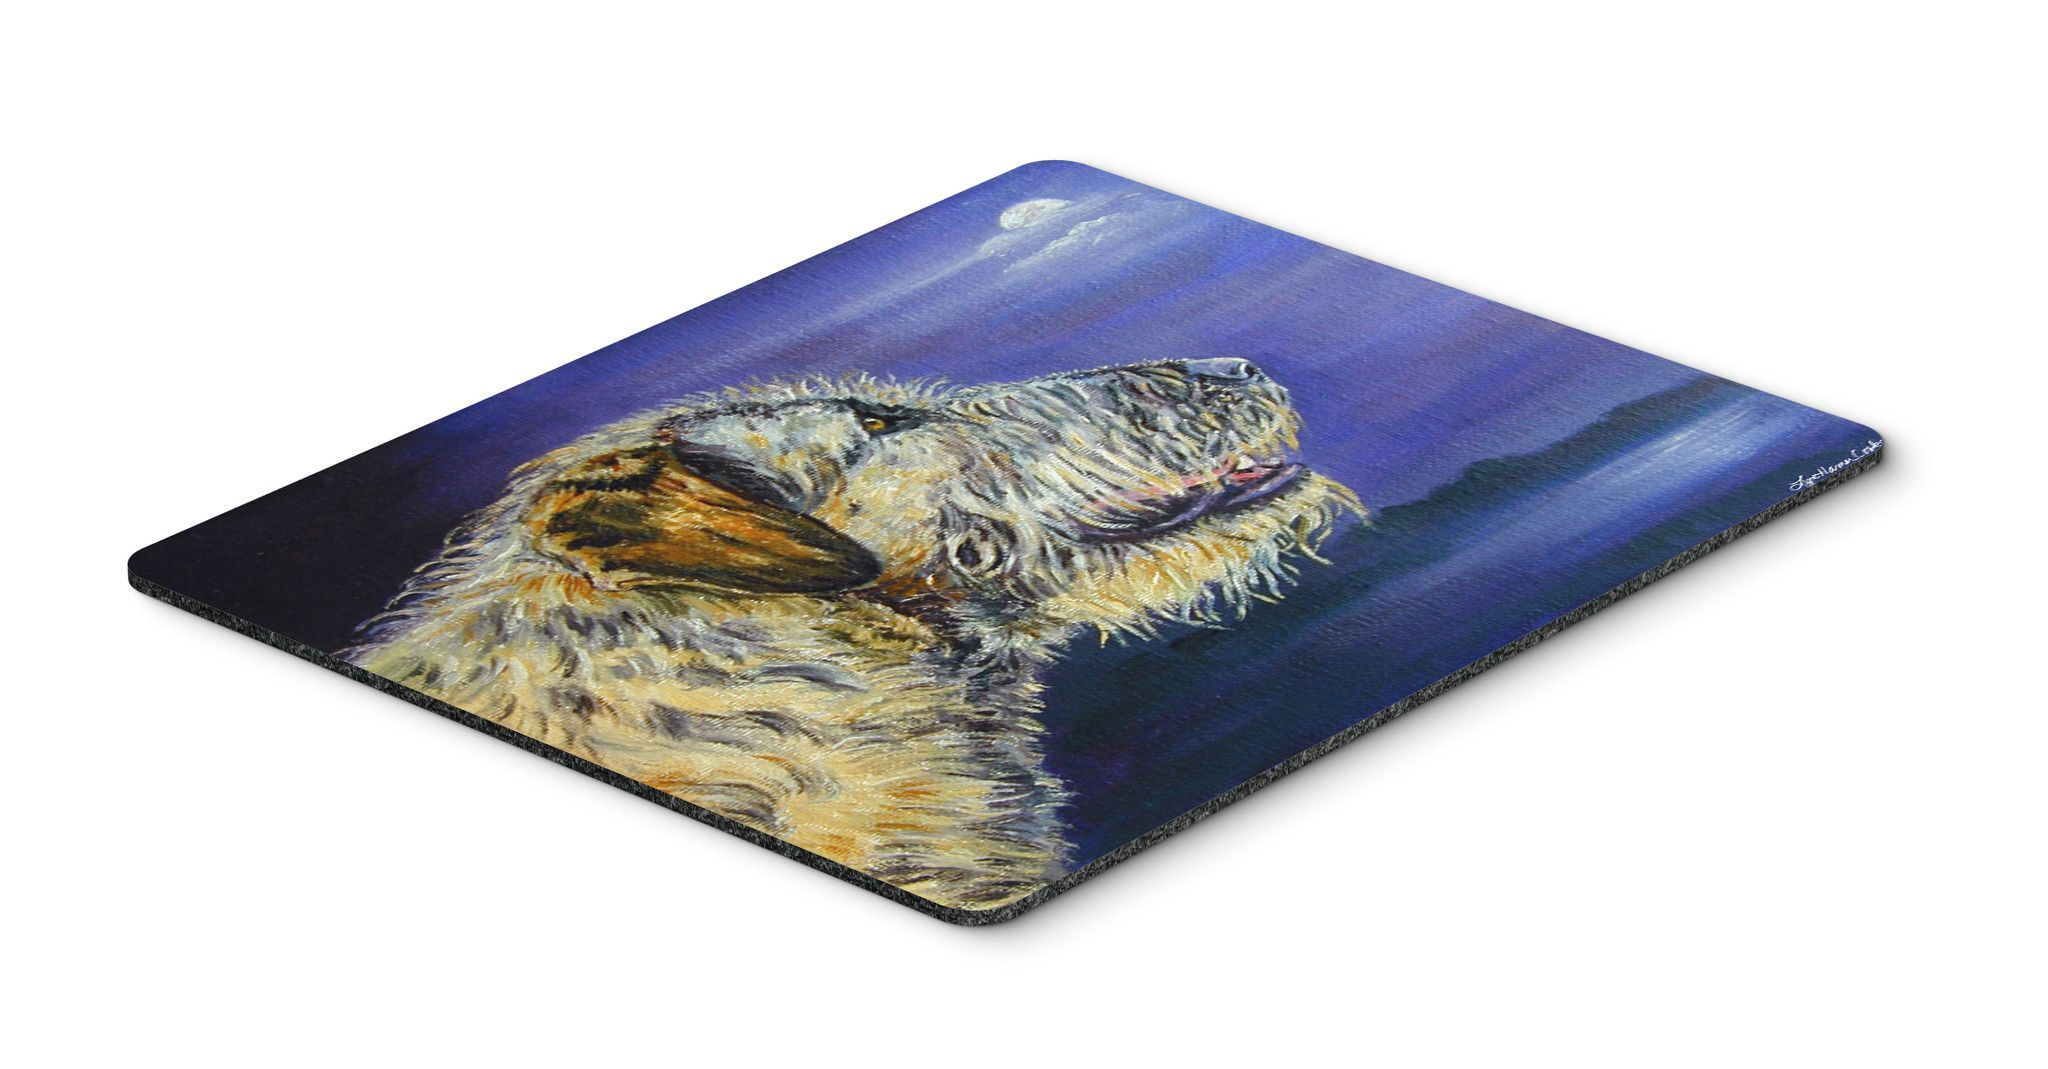 Irish Wolfhound Looking Mouse Pad, Hot Pad or Trivet 7352MP